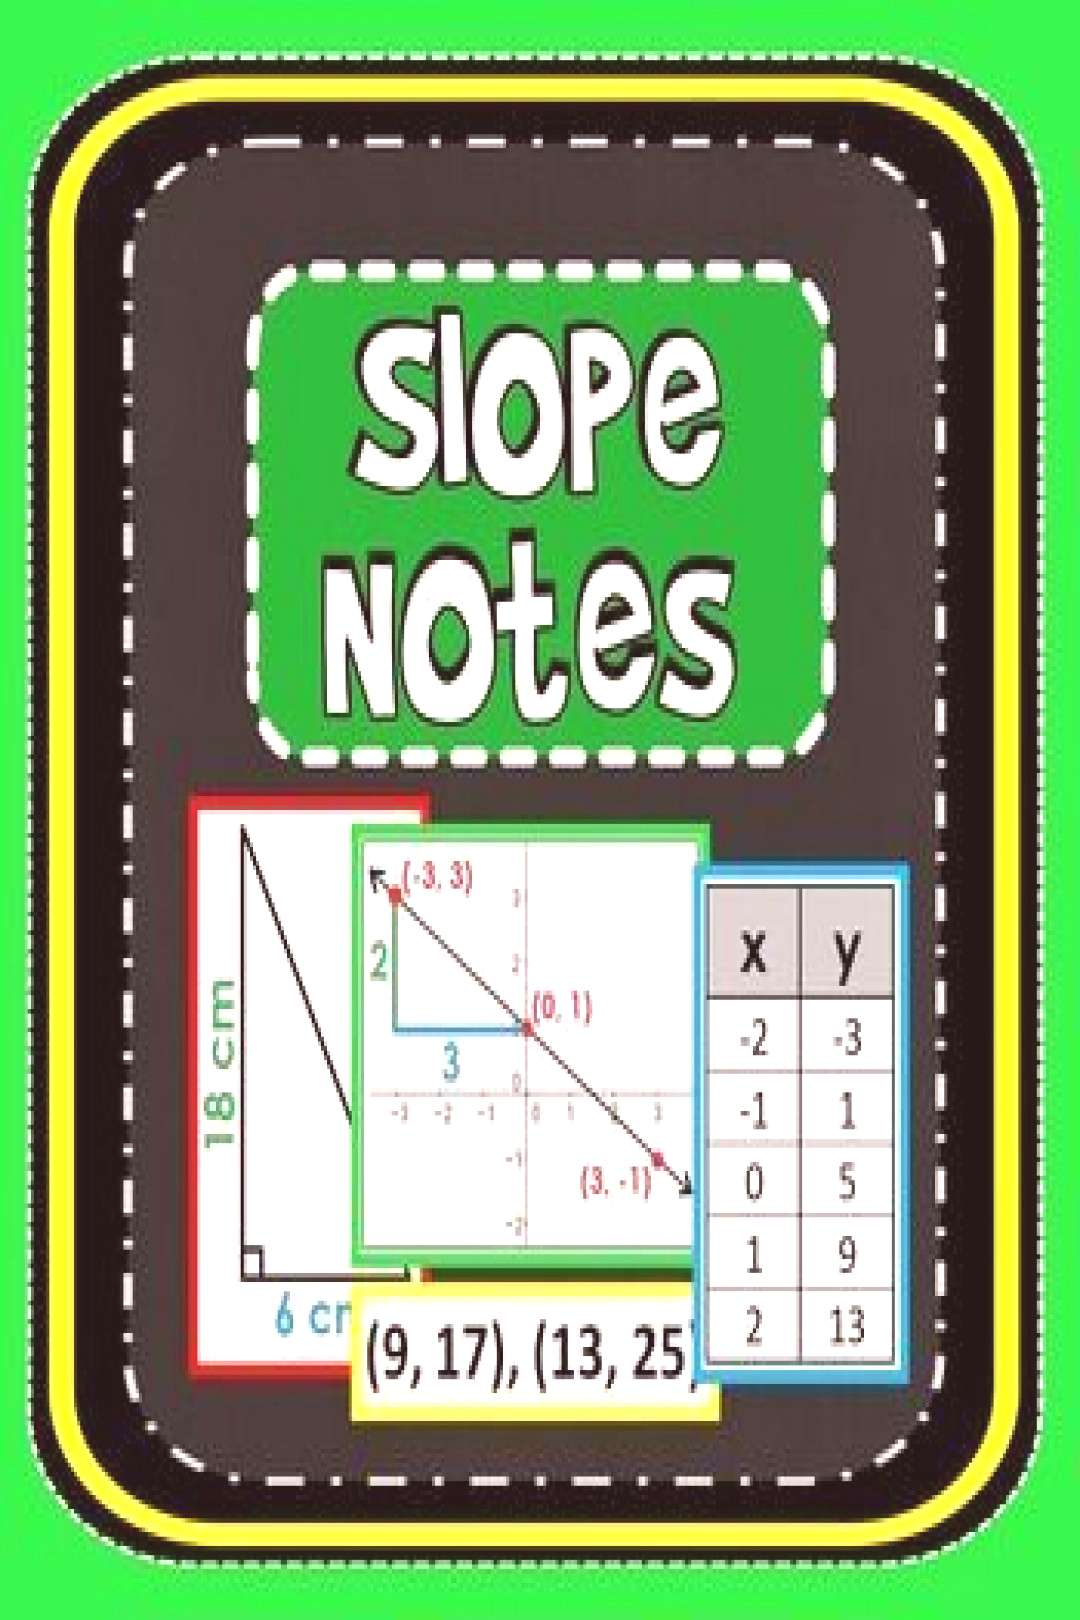 Slope Notes Algebra 1 ; Slope Notes Algebra 1 slope notes algebra 1 - slope notes algebra 1